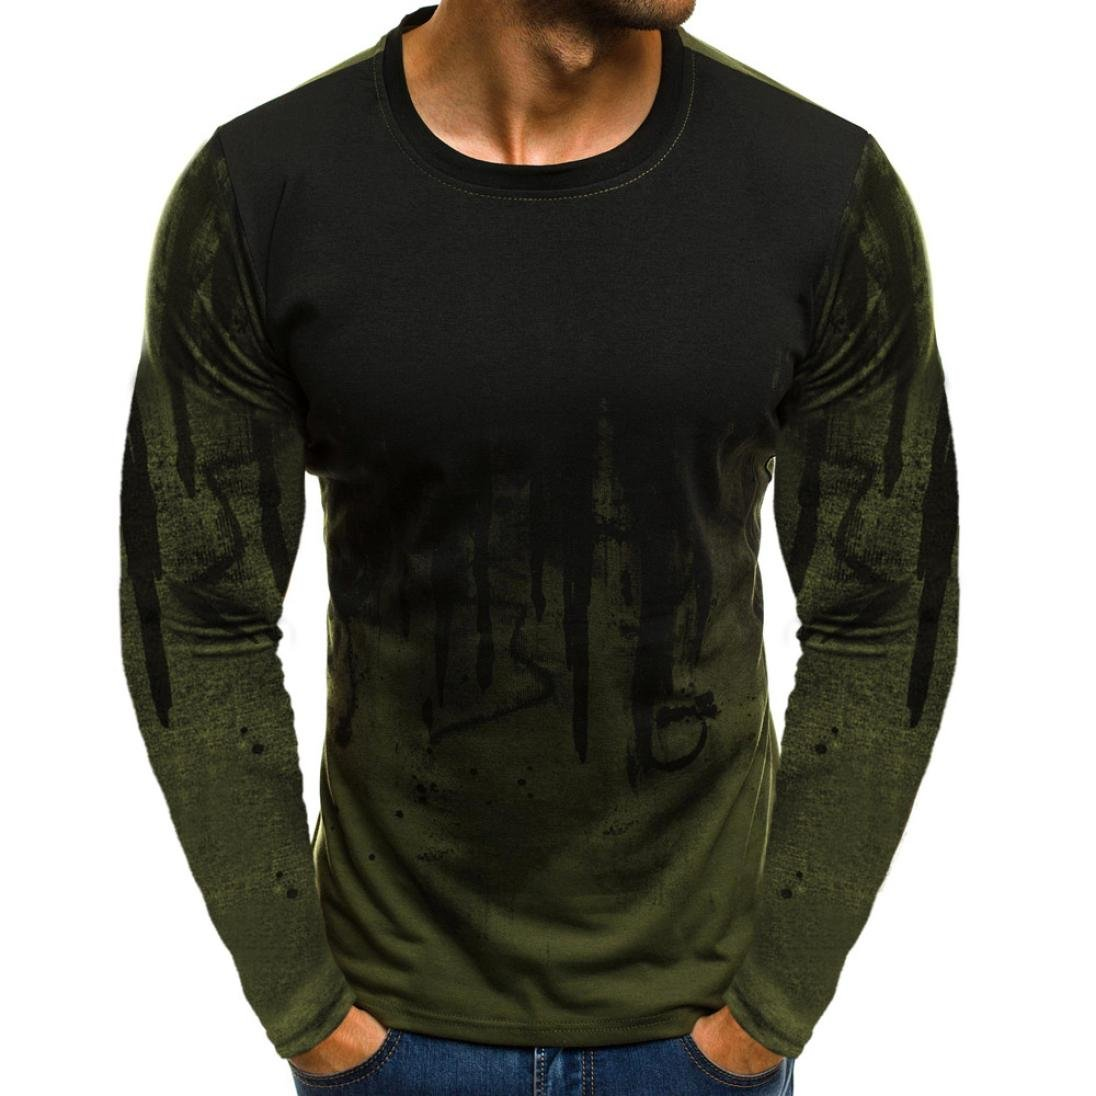 iOPQO T-Shirts for Men, Sweater Gradient Long Sleeve Muscle Solid Blouse Shirt